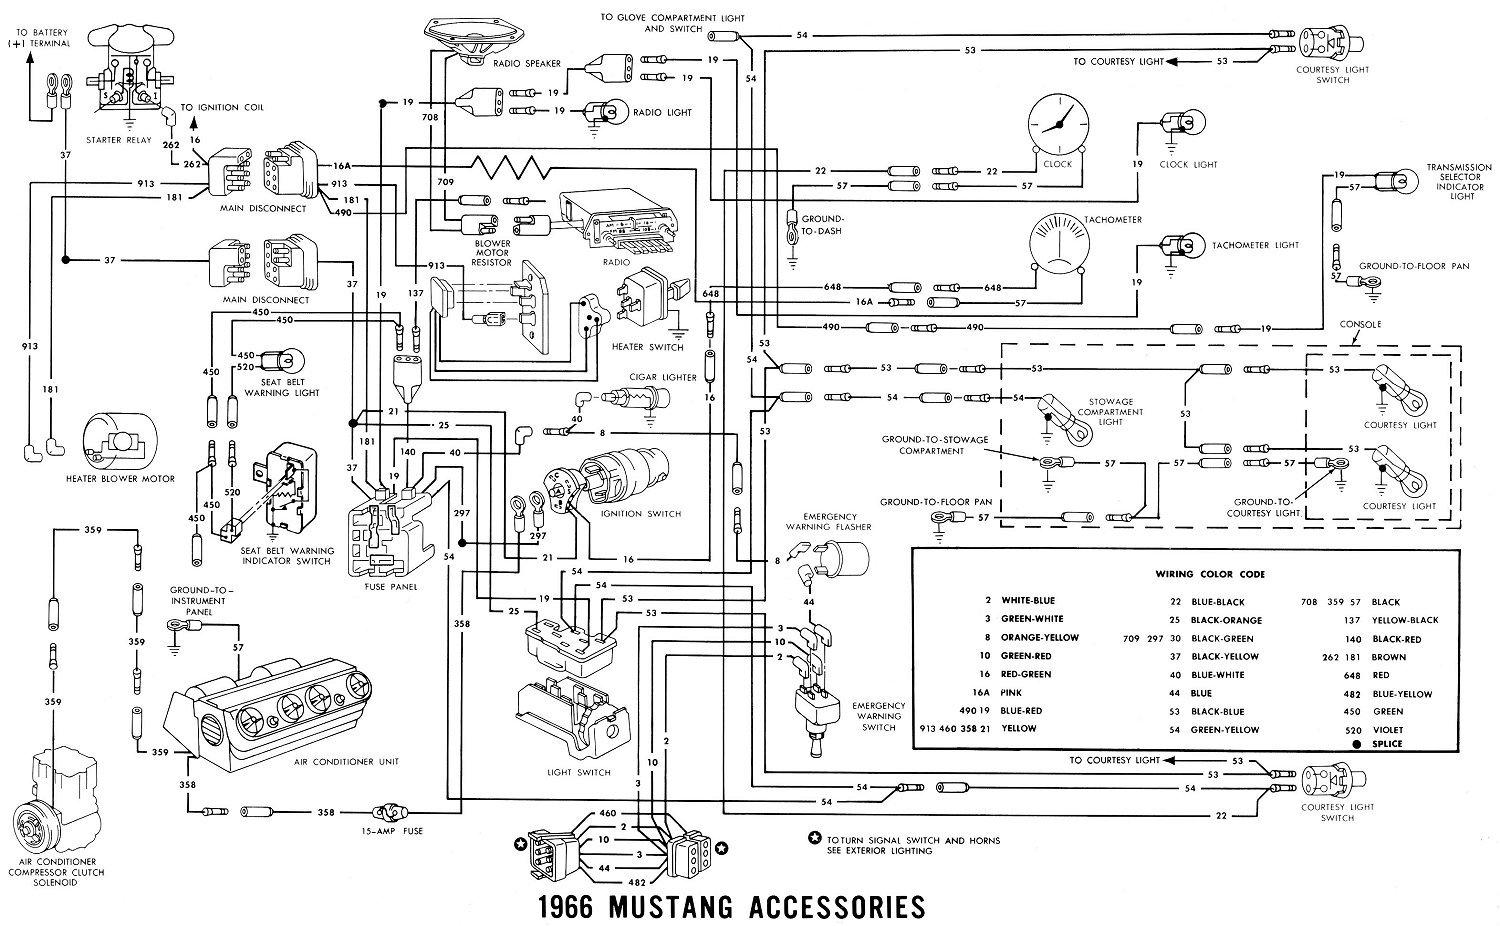 66 ford ignition system wiring diagram pdf with 820 on 66 Mustang 2 Speed Wiper Wiring Diagram besides Installing 20Gauges together with 1966 Mustang Wiring Diagram Pdf as well Vanagon Radio Wiring Diagram Besides Vw Turn Signal besides 108079 Wiring Question.